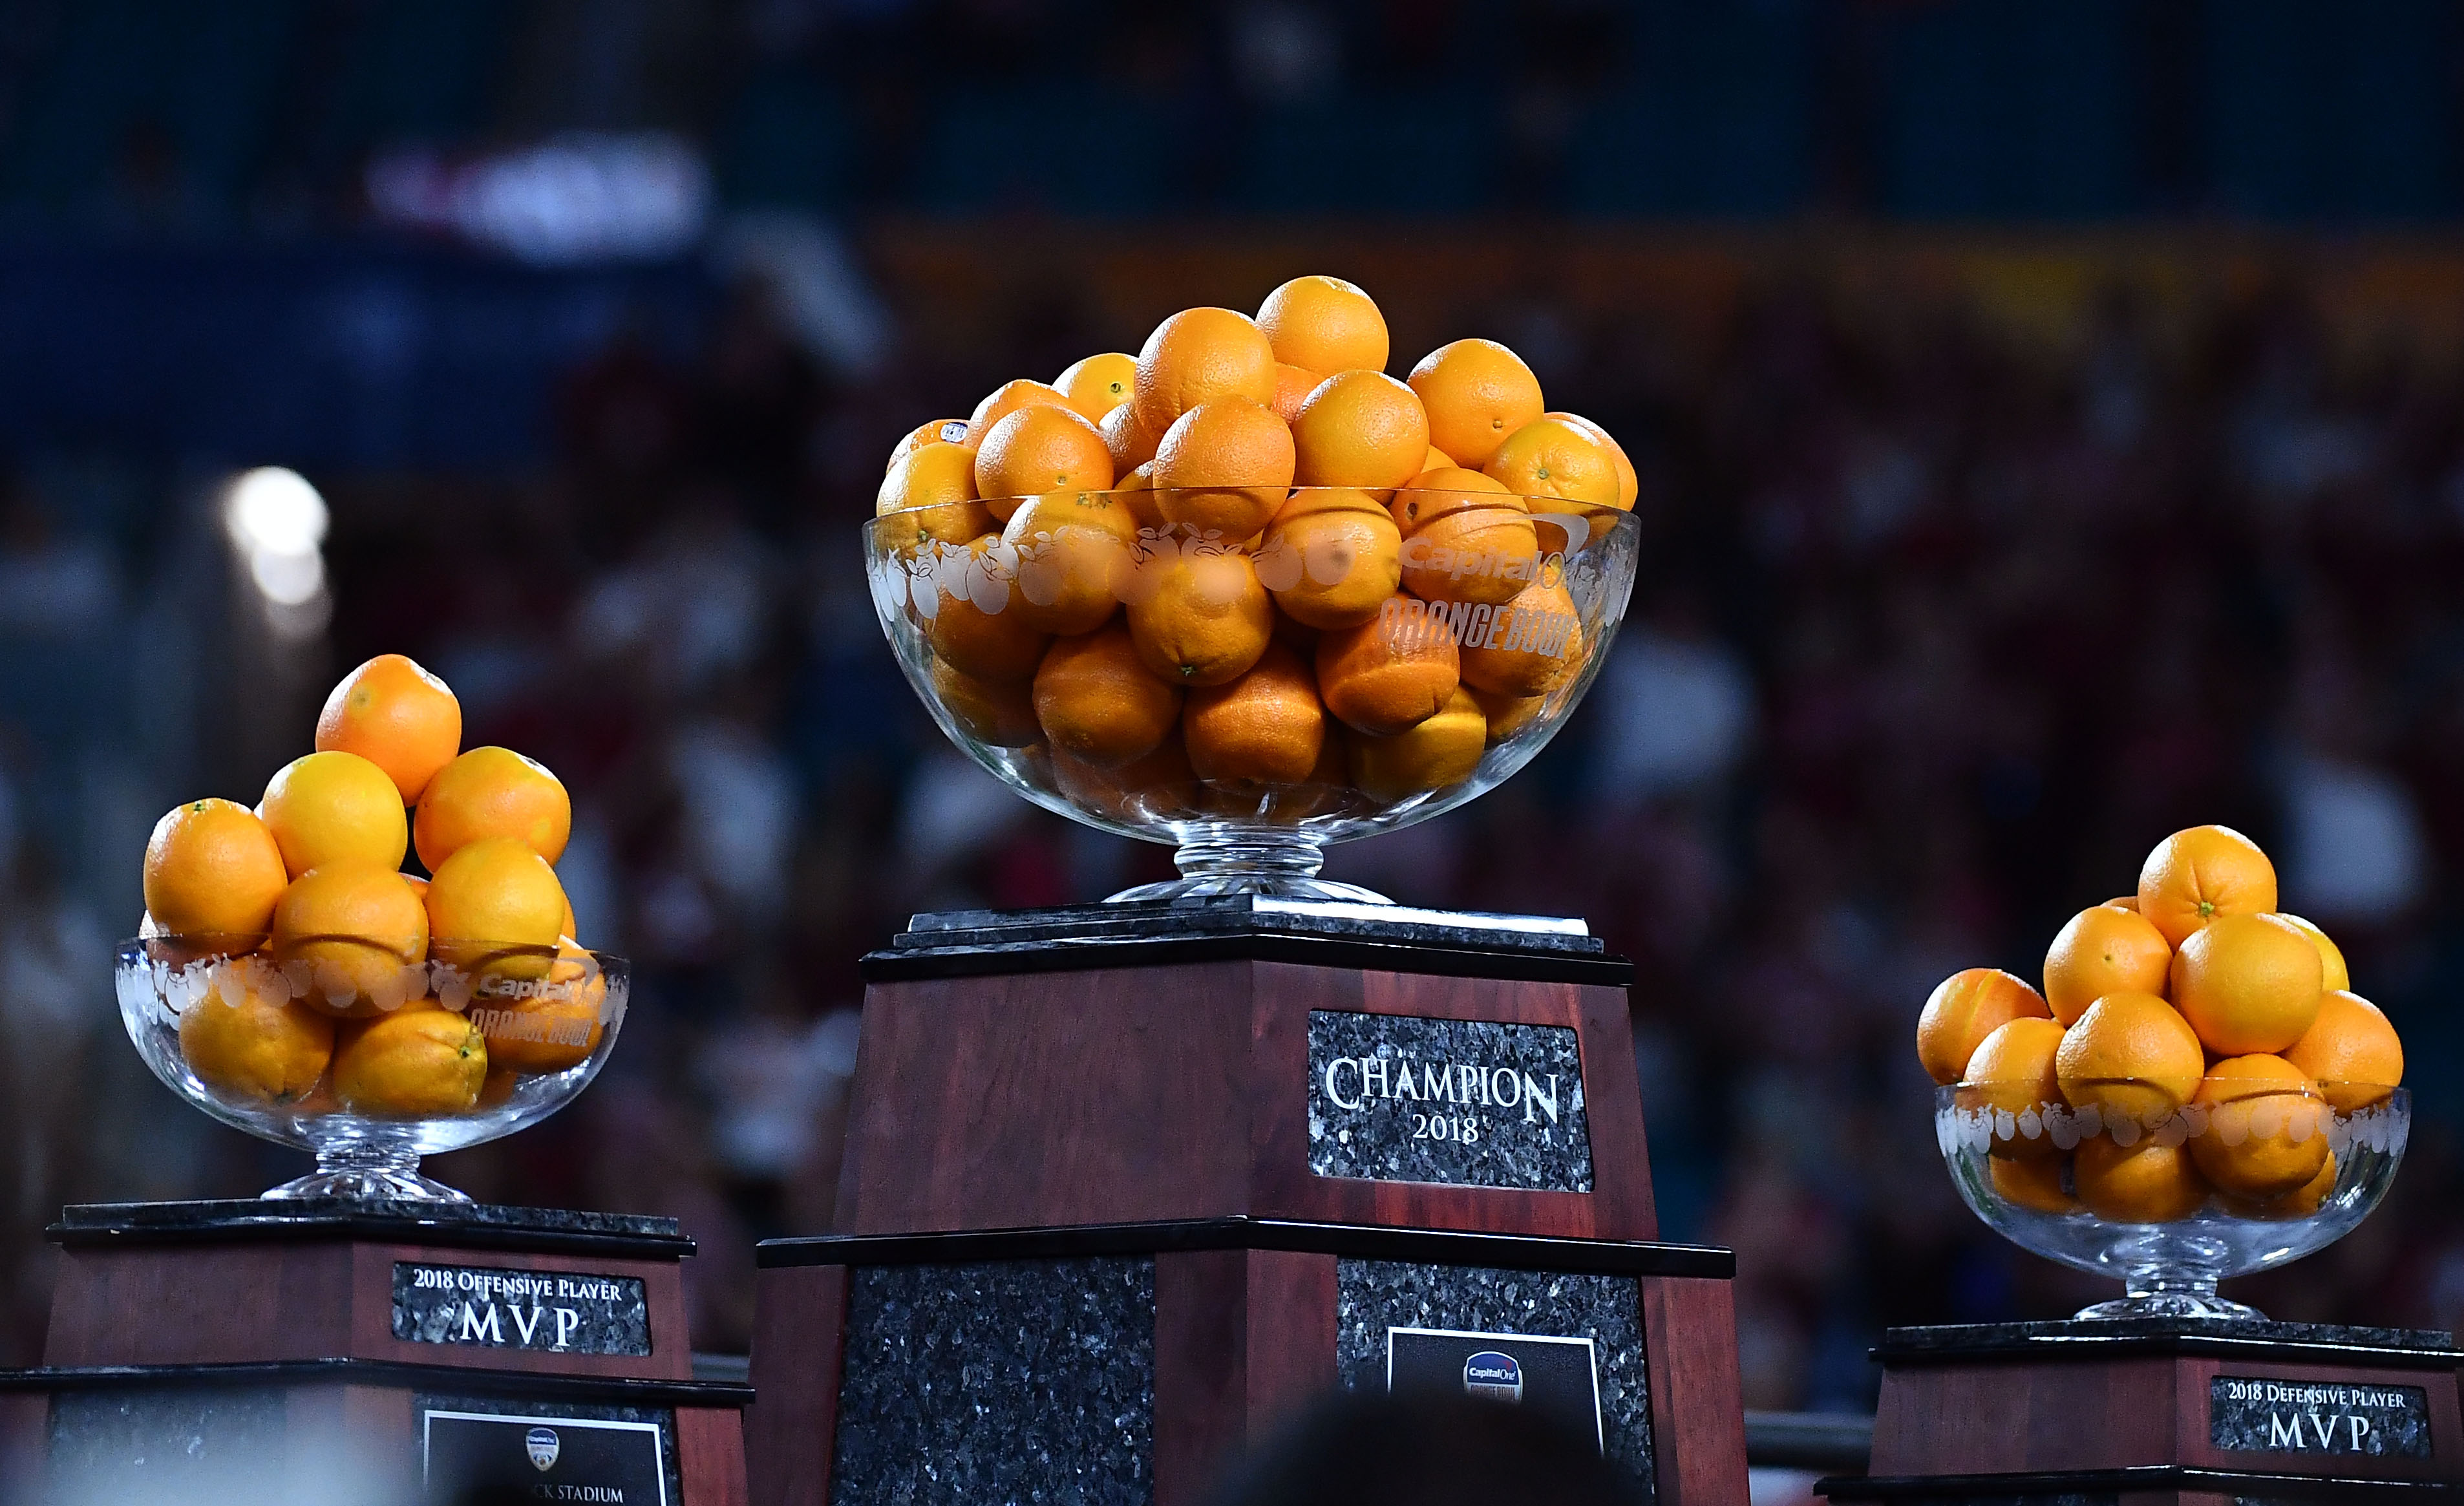 BREAKING: UF Student Tickets Already Sold Out For Orange Bowl